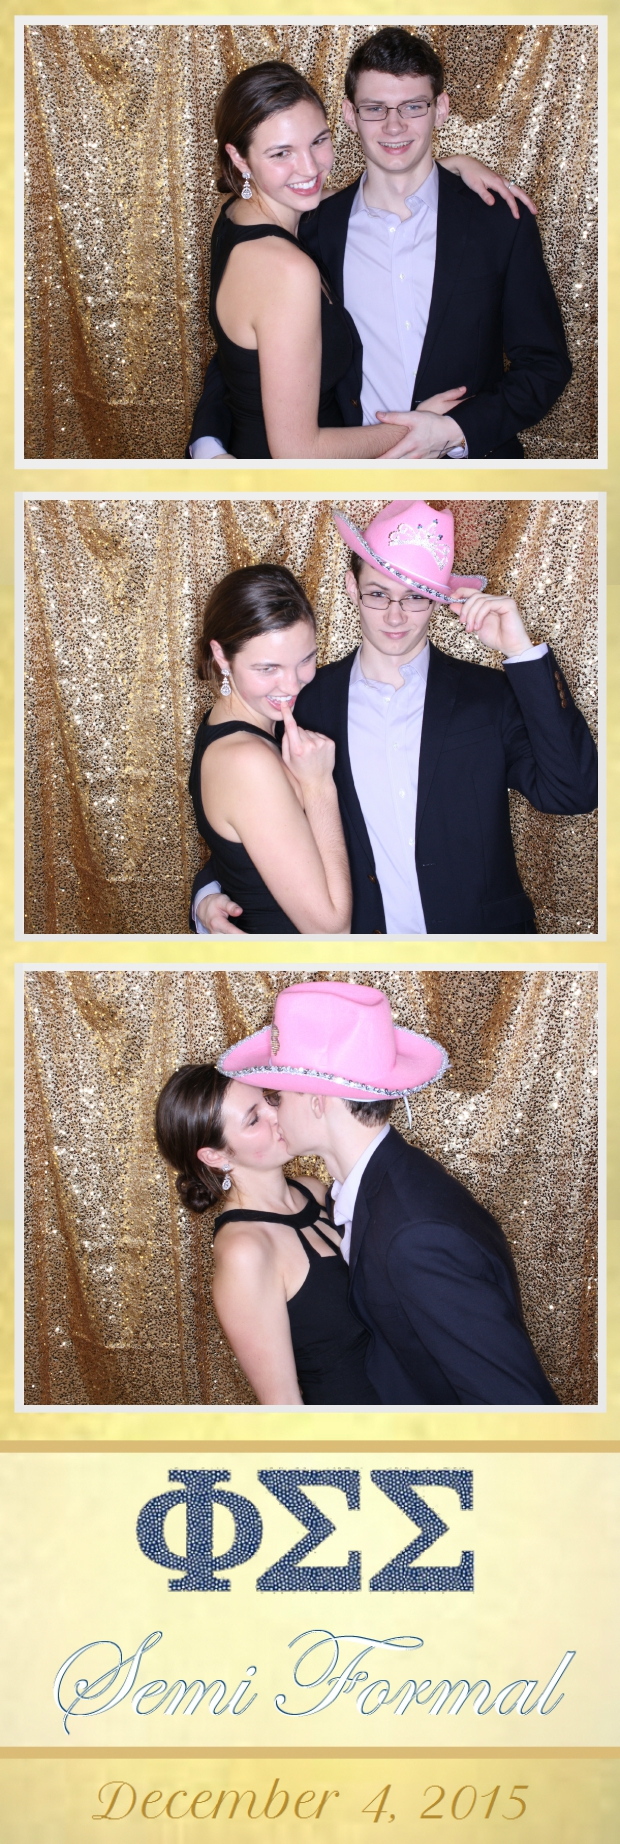 Guest House Events Photo Booth Phi Sigma Sigma Semi Formal (64).jpg